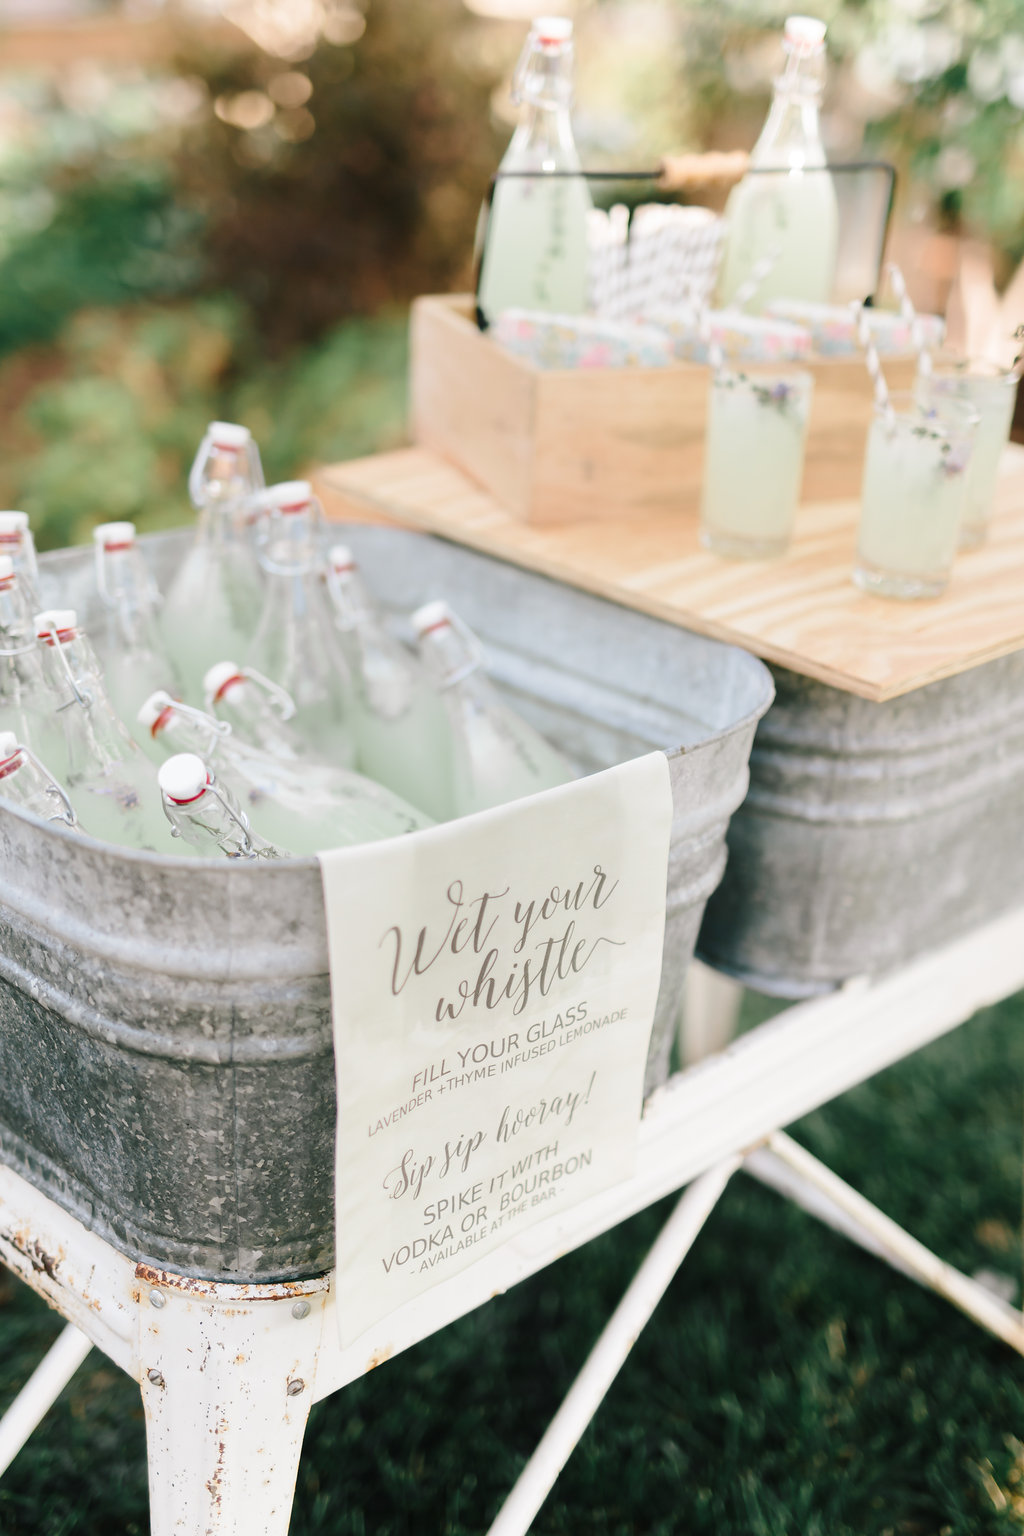 Nebraska Midwest Tent Wedding Lemonade